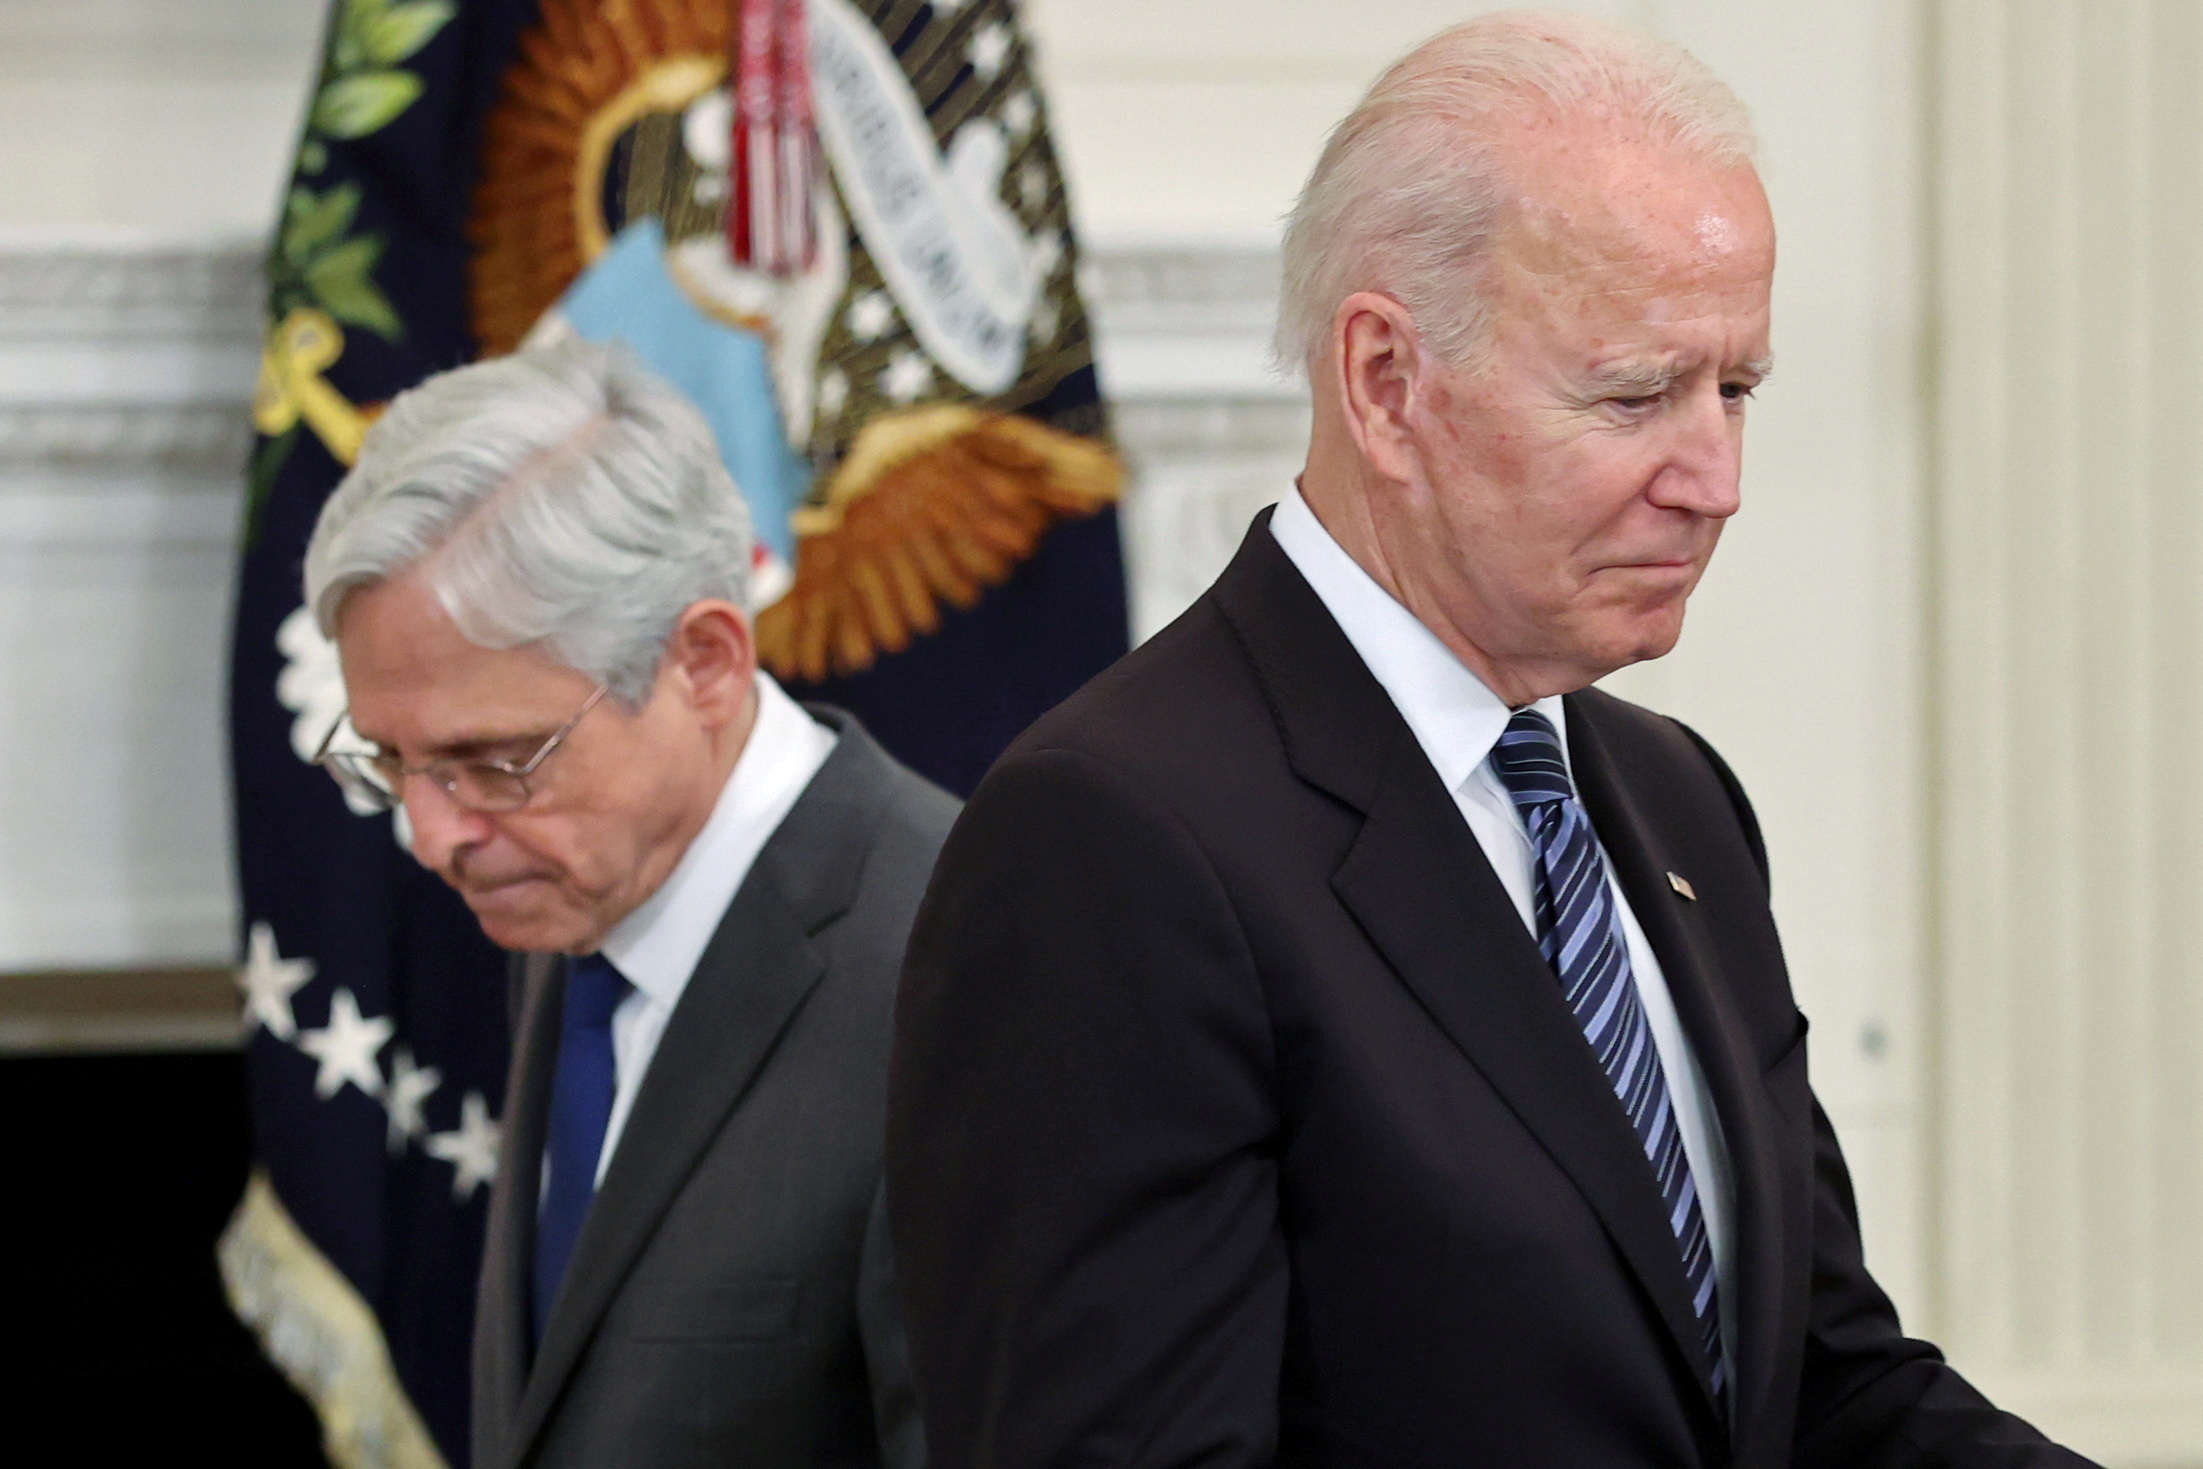 U.S. Attorney General Merrick Garland is seen next to U.S. President Joe Biden during the delivery of remarks after a roundtable discussion with advisors on steps to curtail U.S. gun violence, at the White House in Washington, U.S. June 23, 2021. REUTERS/Jonathan Ernst